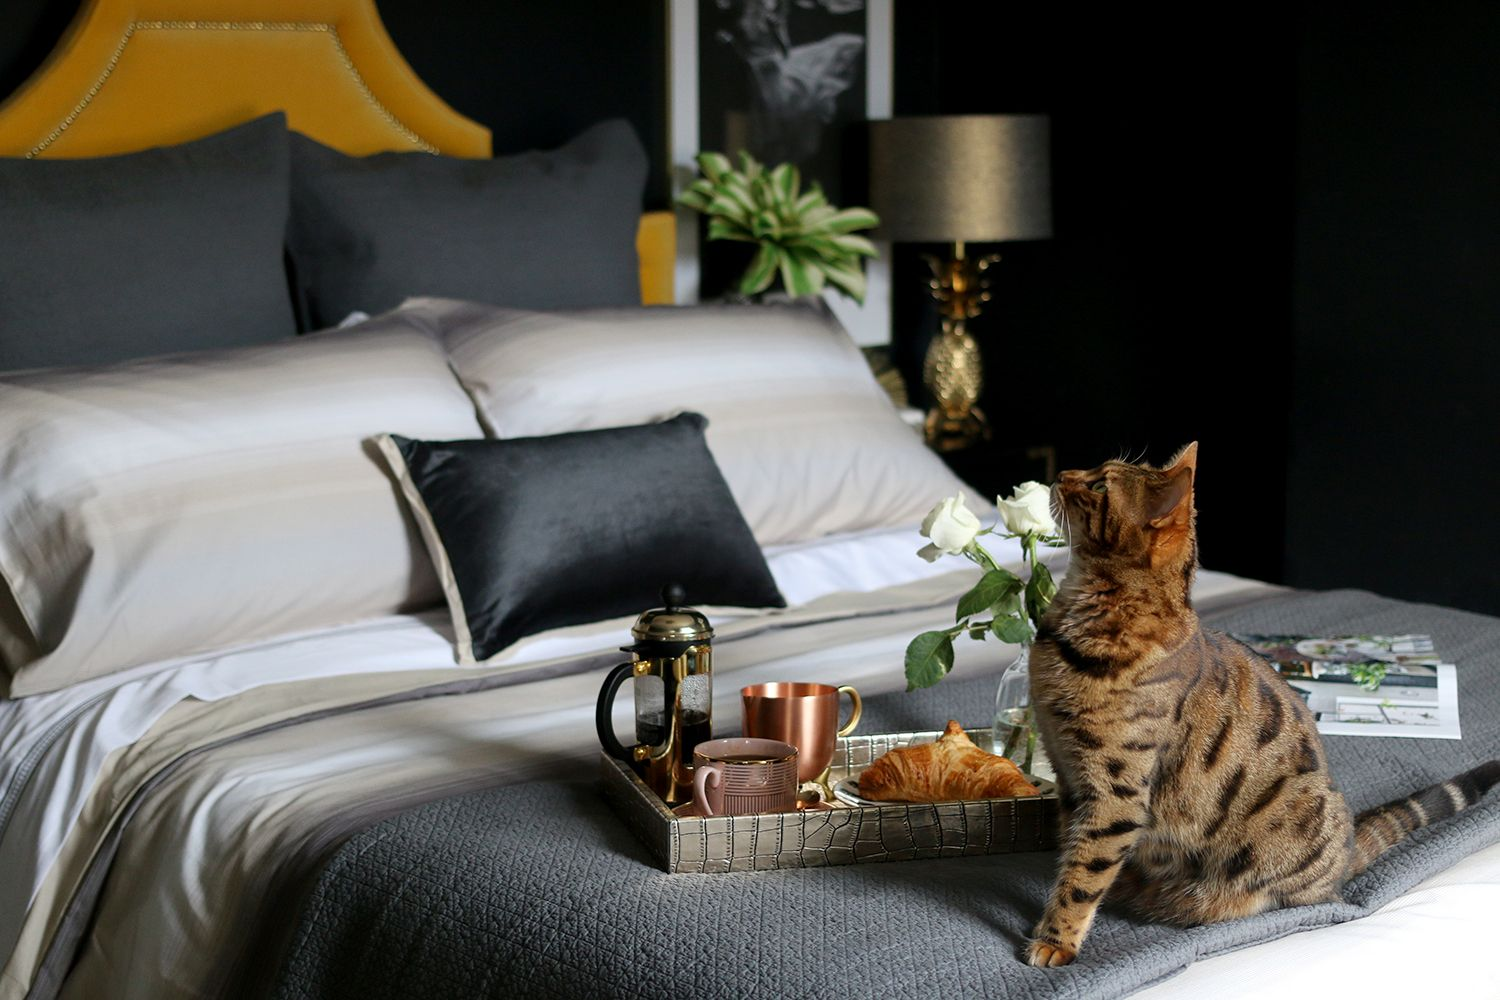 Slaapkamer Hotel Look : How to get the luxury hotel look at home bedroom decorating